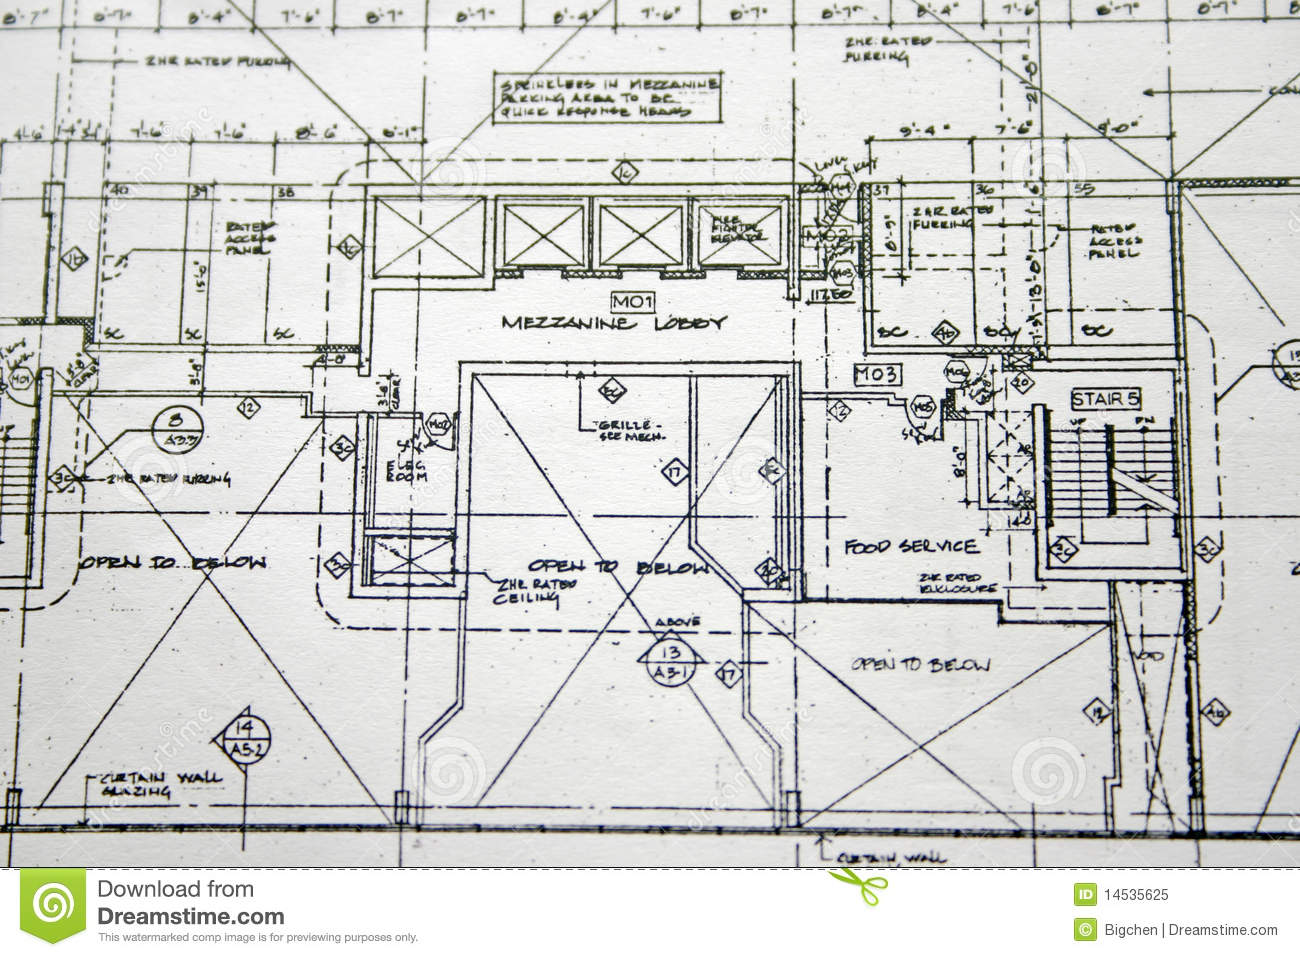 Floor plan drawing royalty free stock photo image 14535625 for Home plan drawing